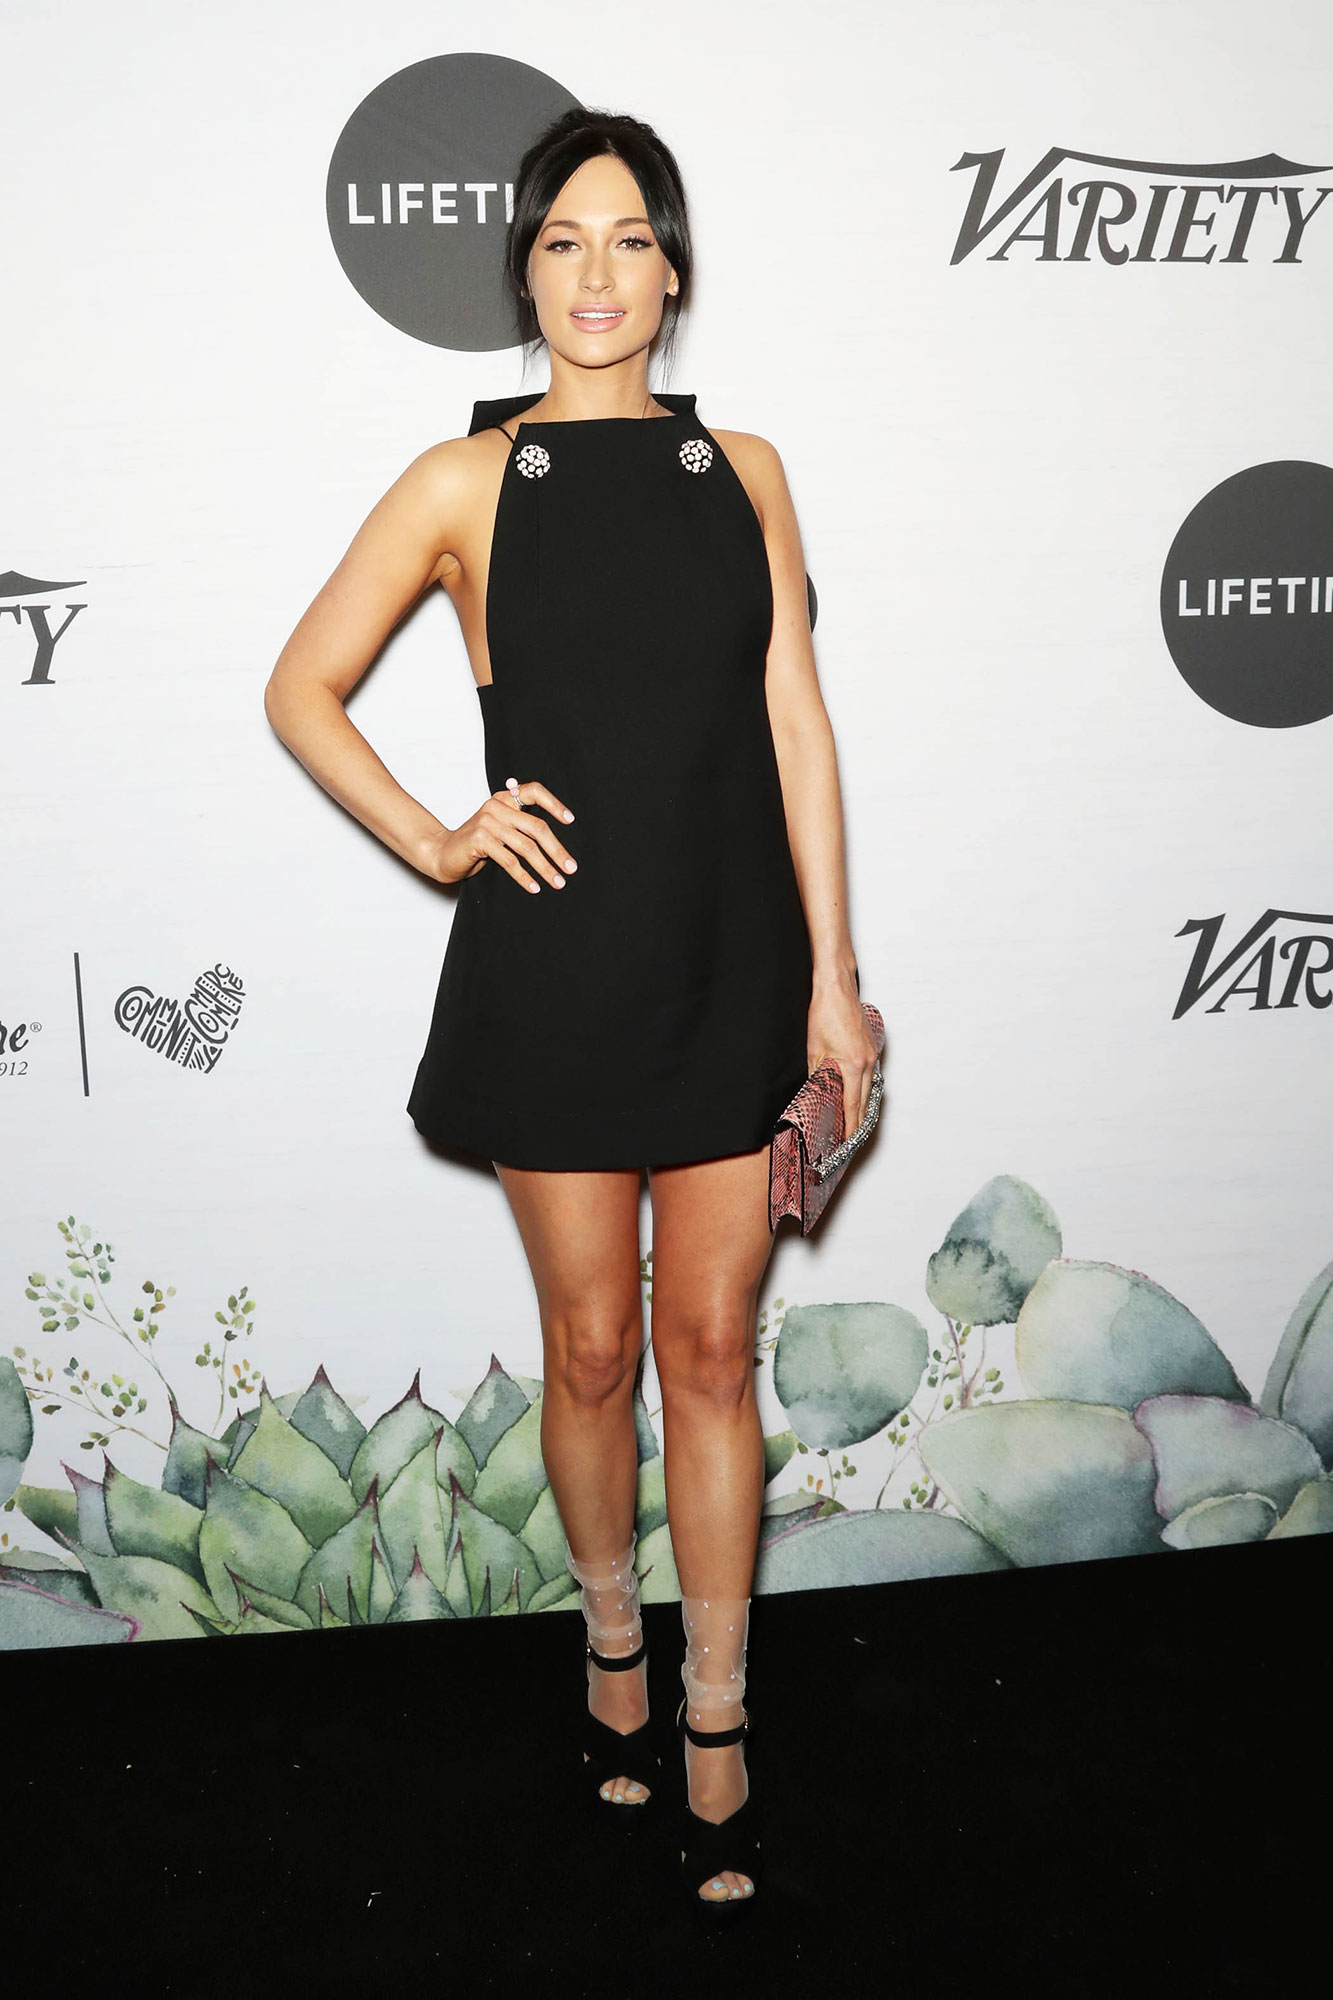 Kacey Musgraves Variety's Power of Women - Proving herself a style icon, the Grammy-winner wore a black minidress with two silver embellished broaches and sheer socks underneath her chunky open-toe heels.